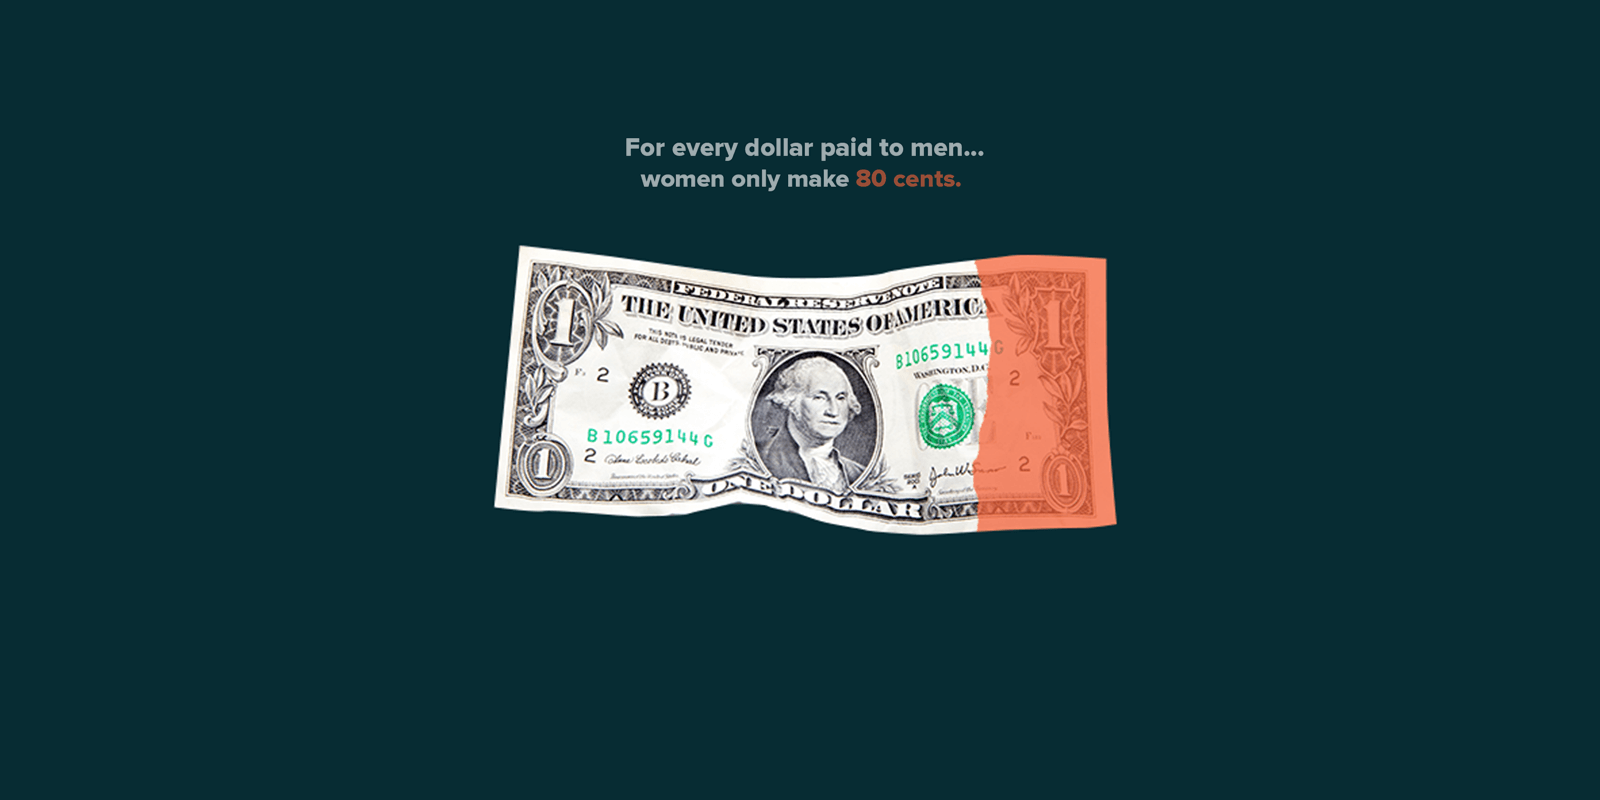 Dollar bill with part colored out